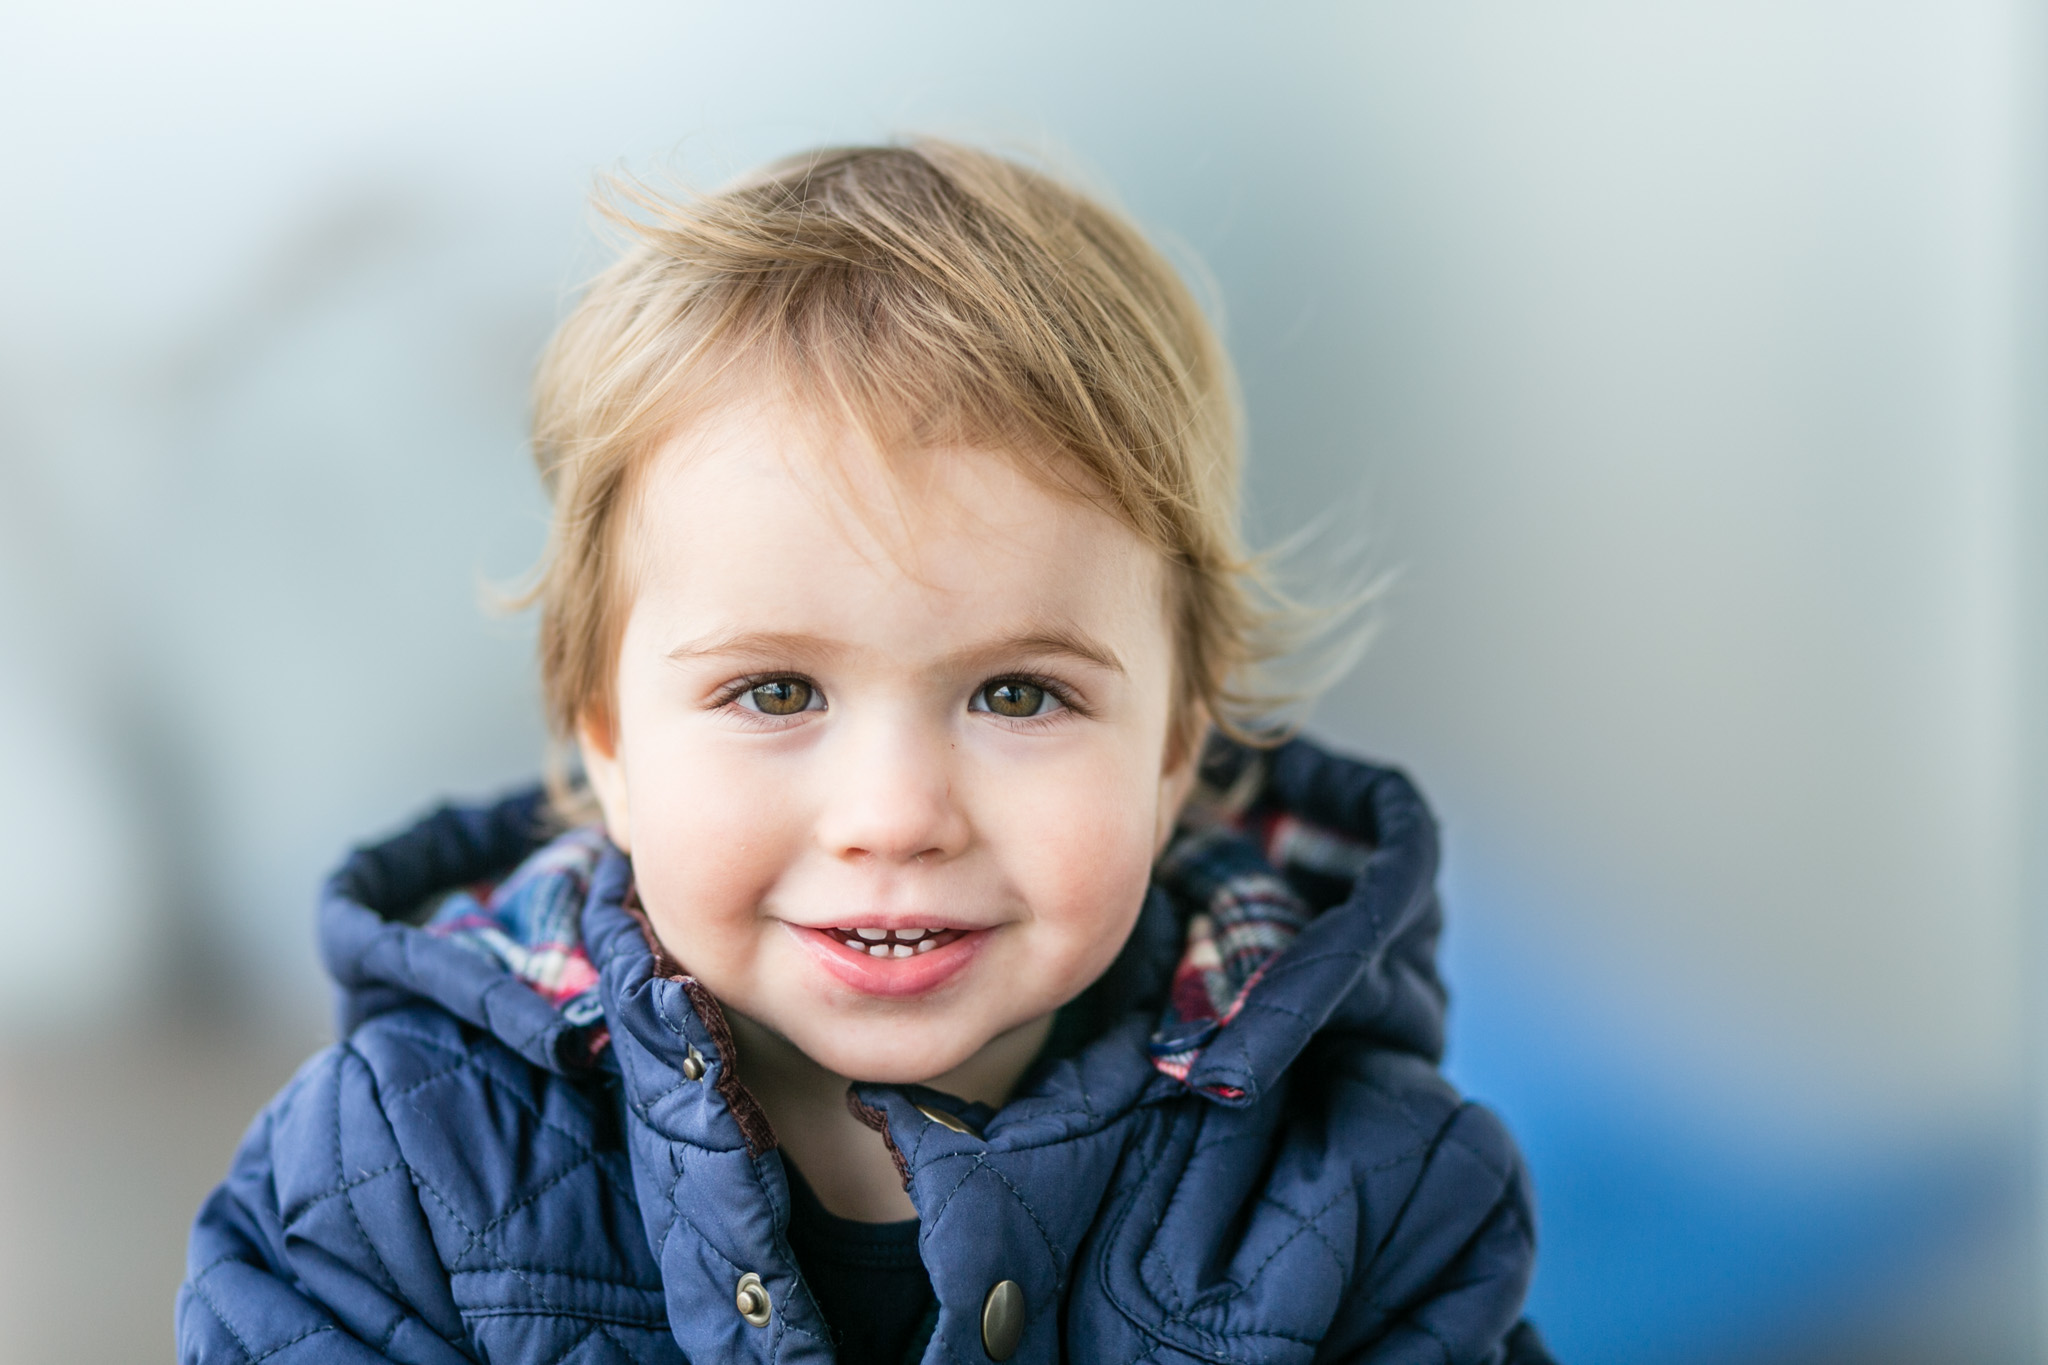 These ten tips will help you take beautiful photos of your kids.